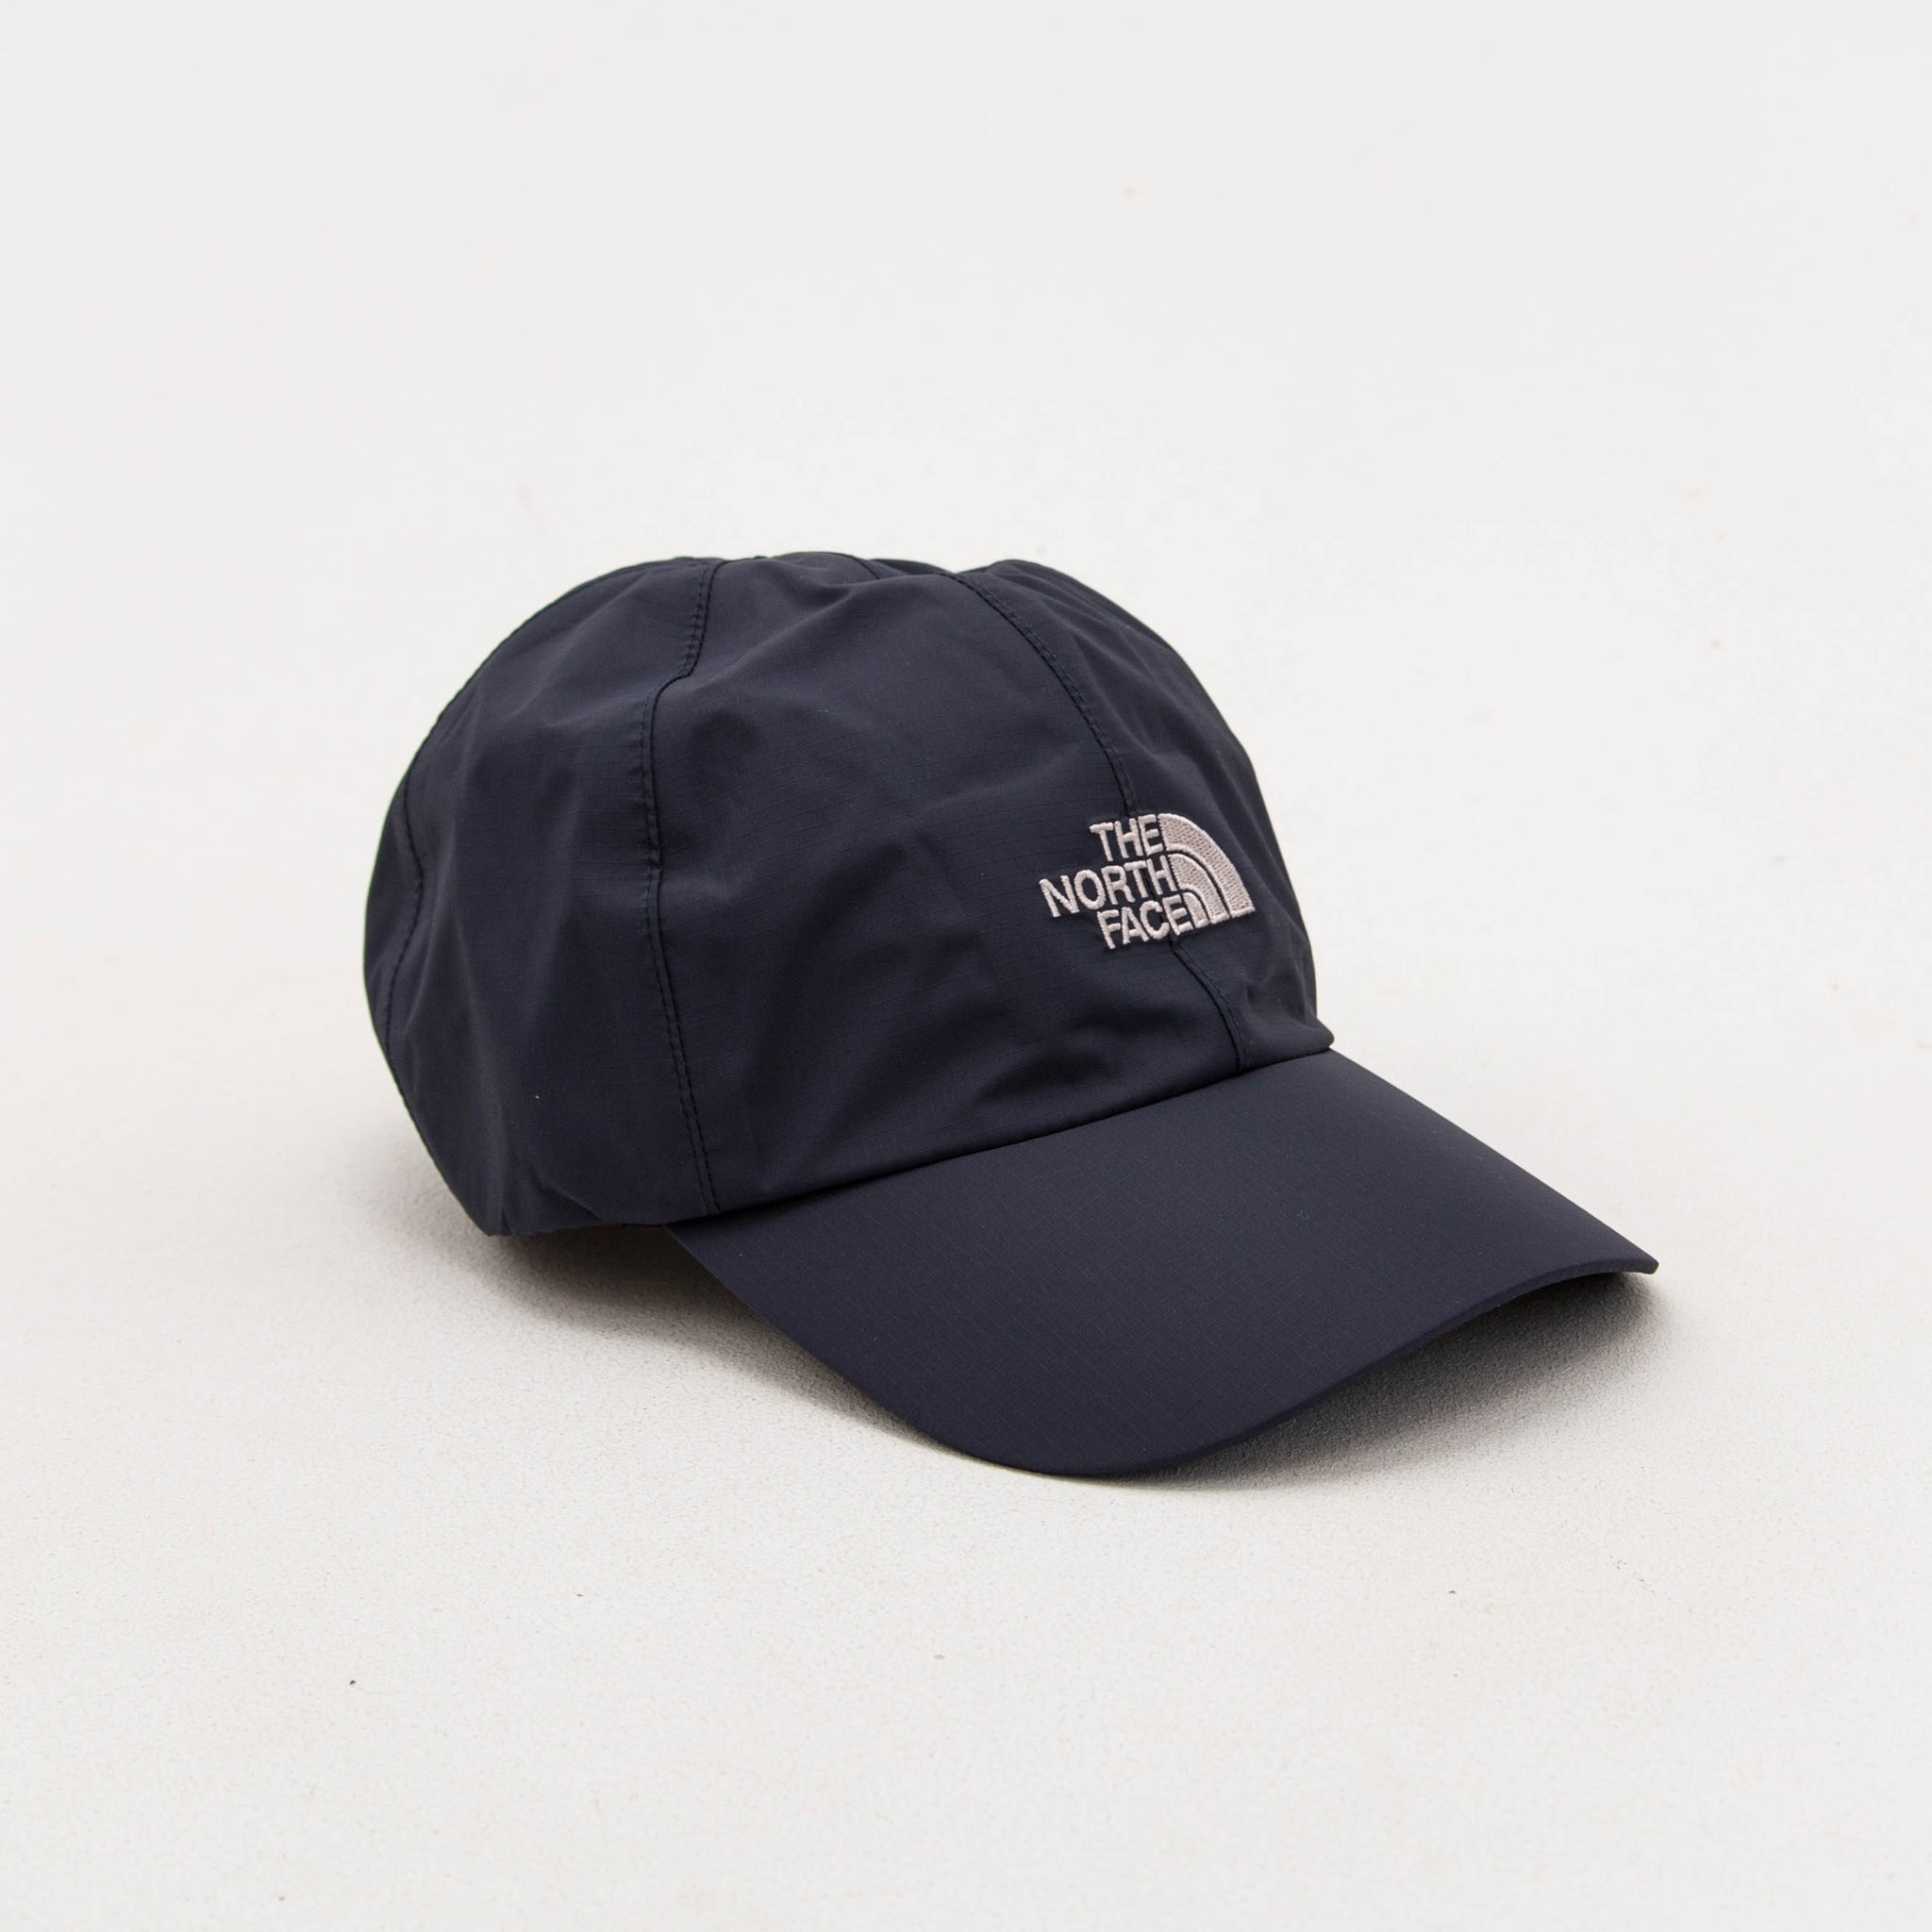 The North Face Dryvent Logo Hat - Navy 330R | AStore